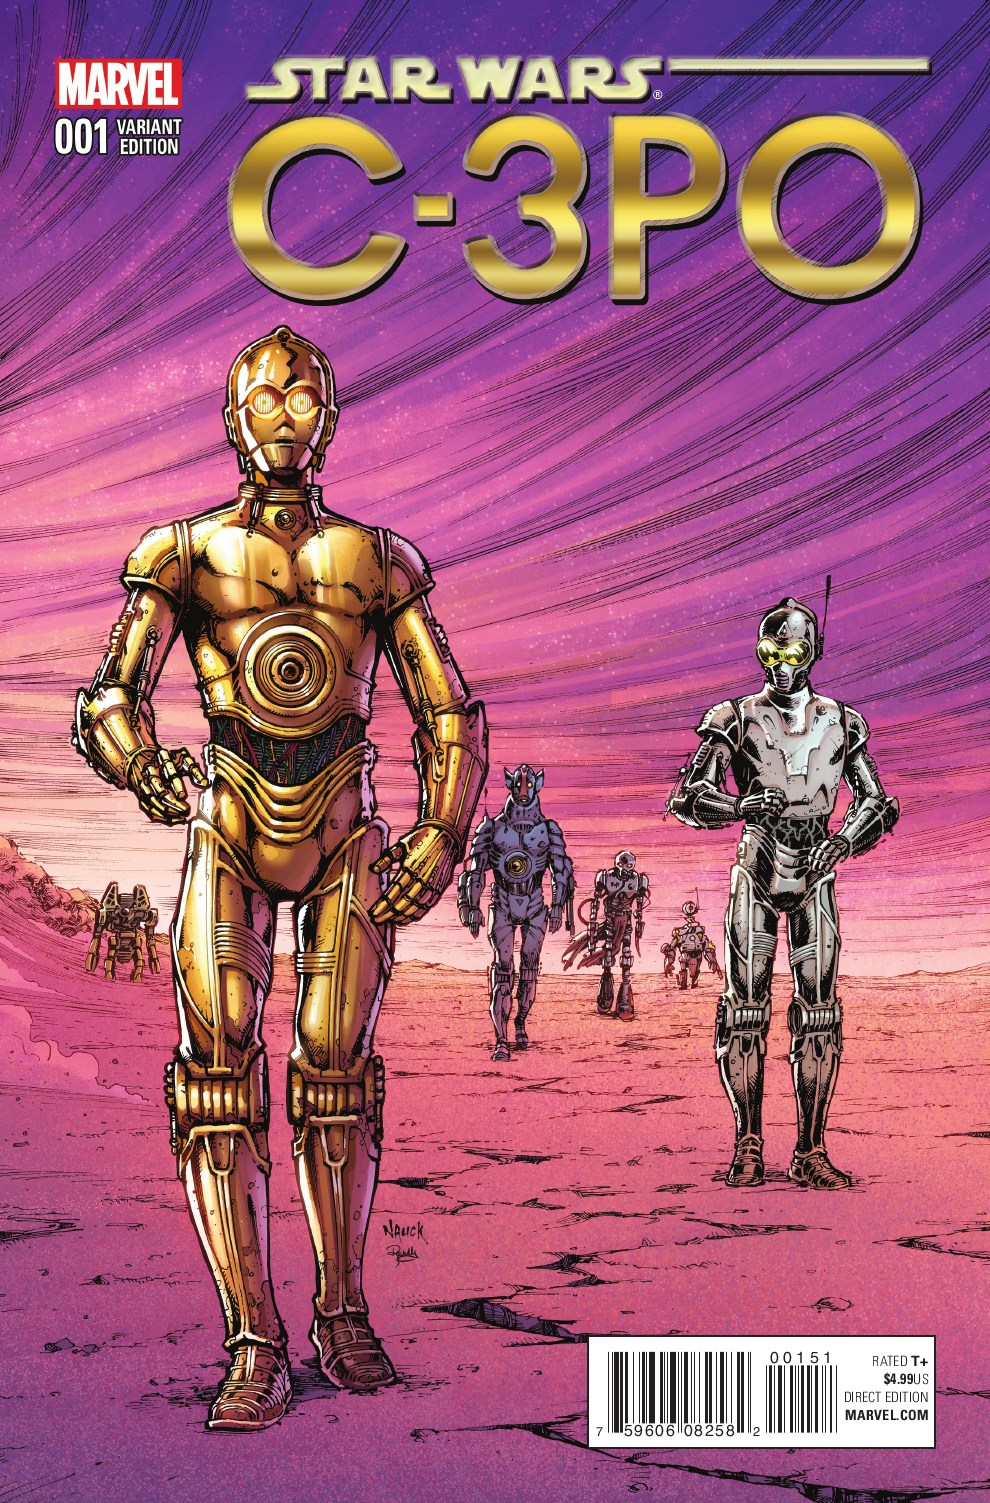 Star Wars Special: C-3PO #1 (Todd Nauck Classic Variant Cover) (13.04.2016)